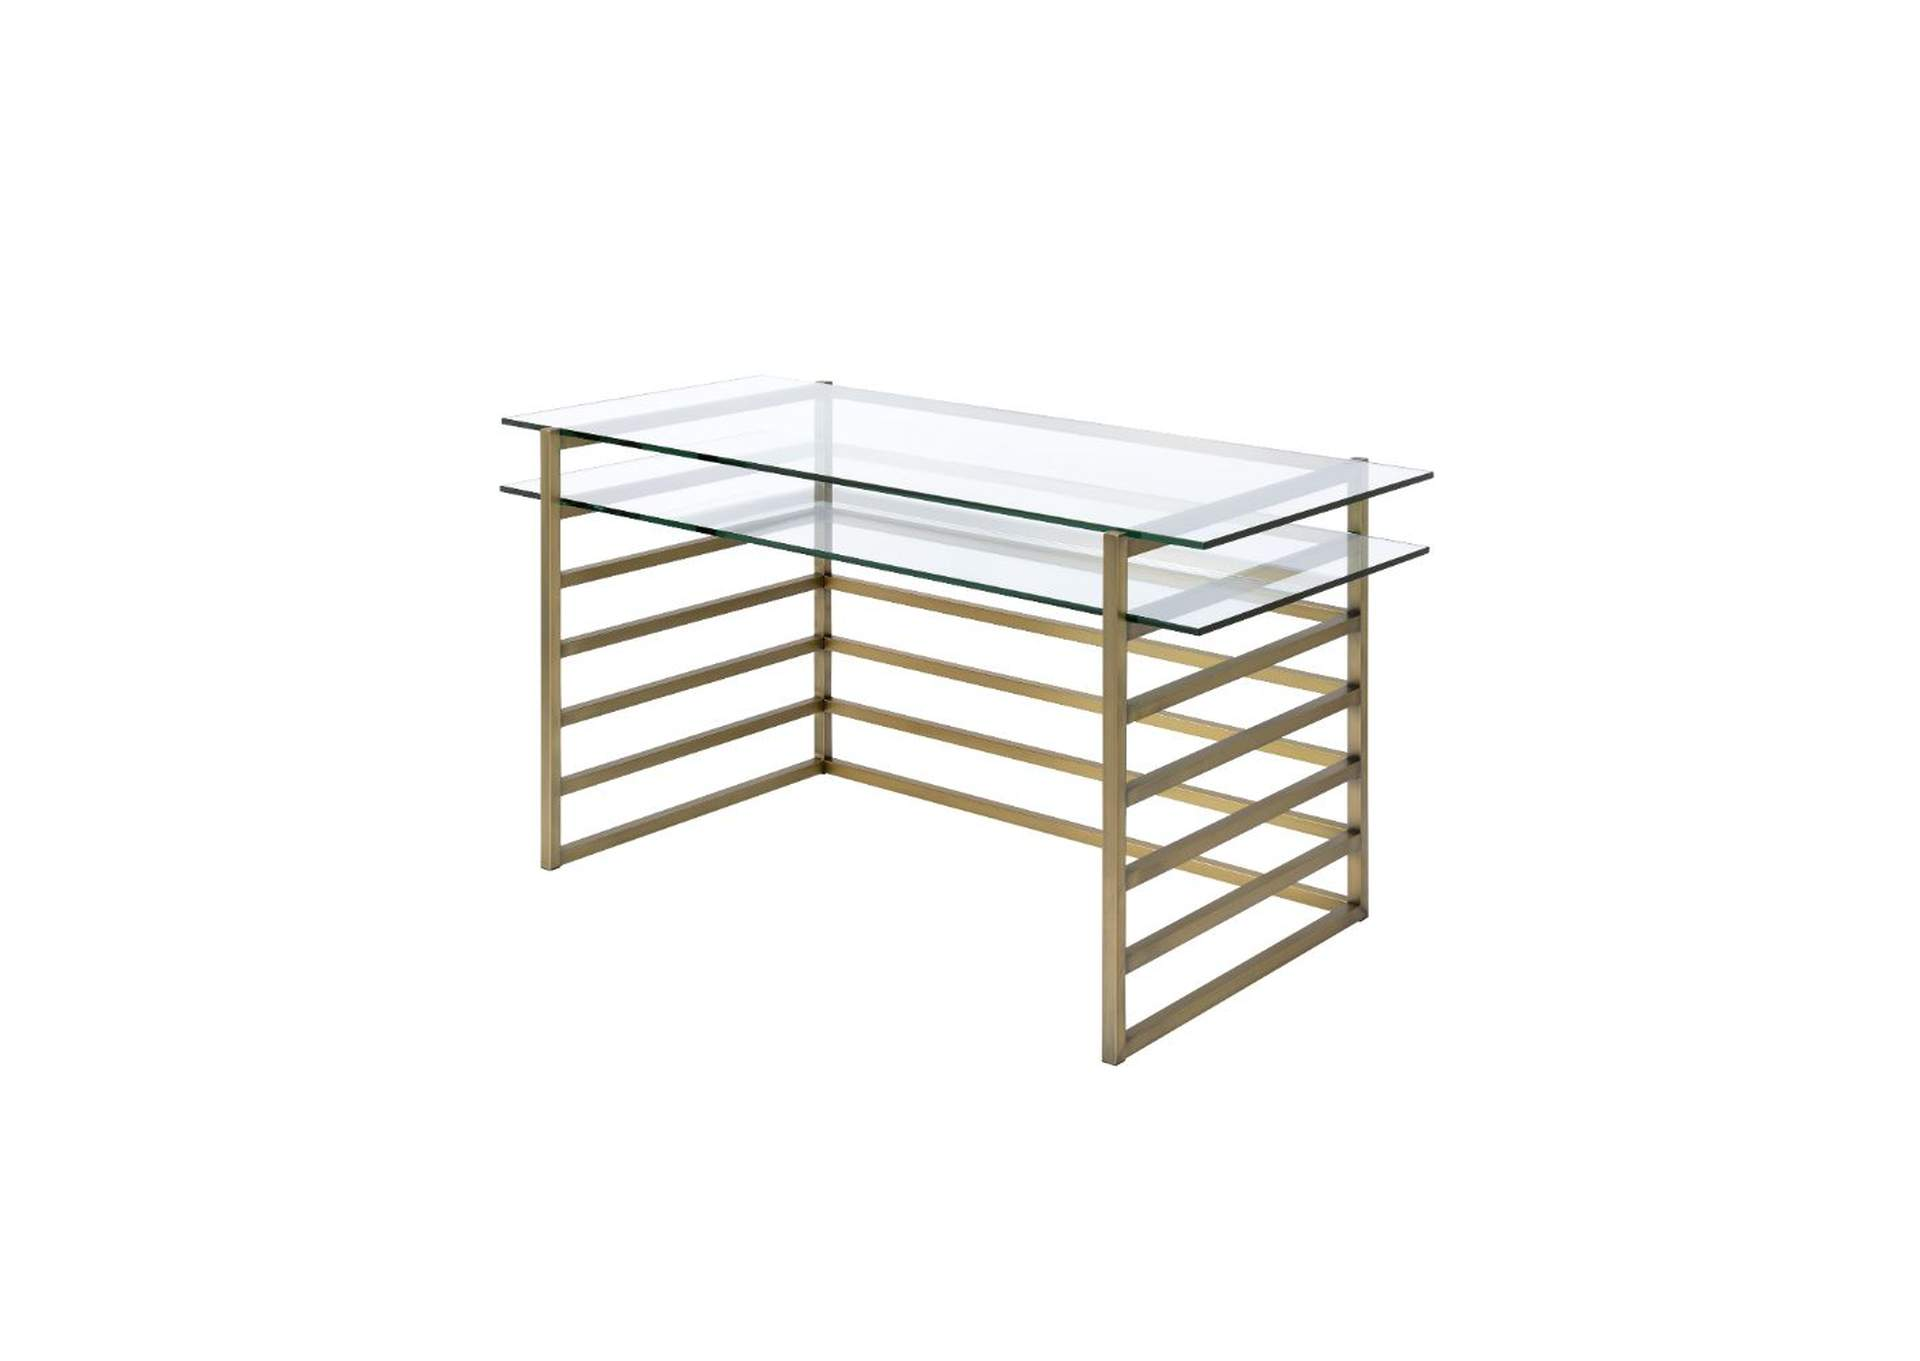 Shona Antique Gold & Clear Glass Desk,Acme